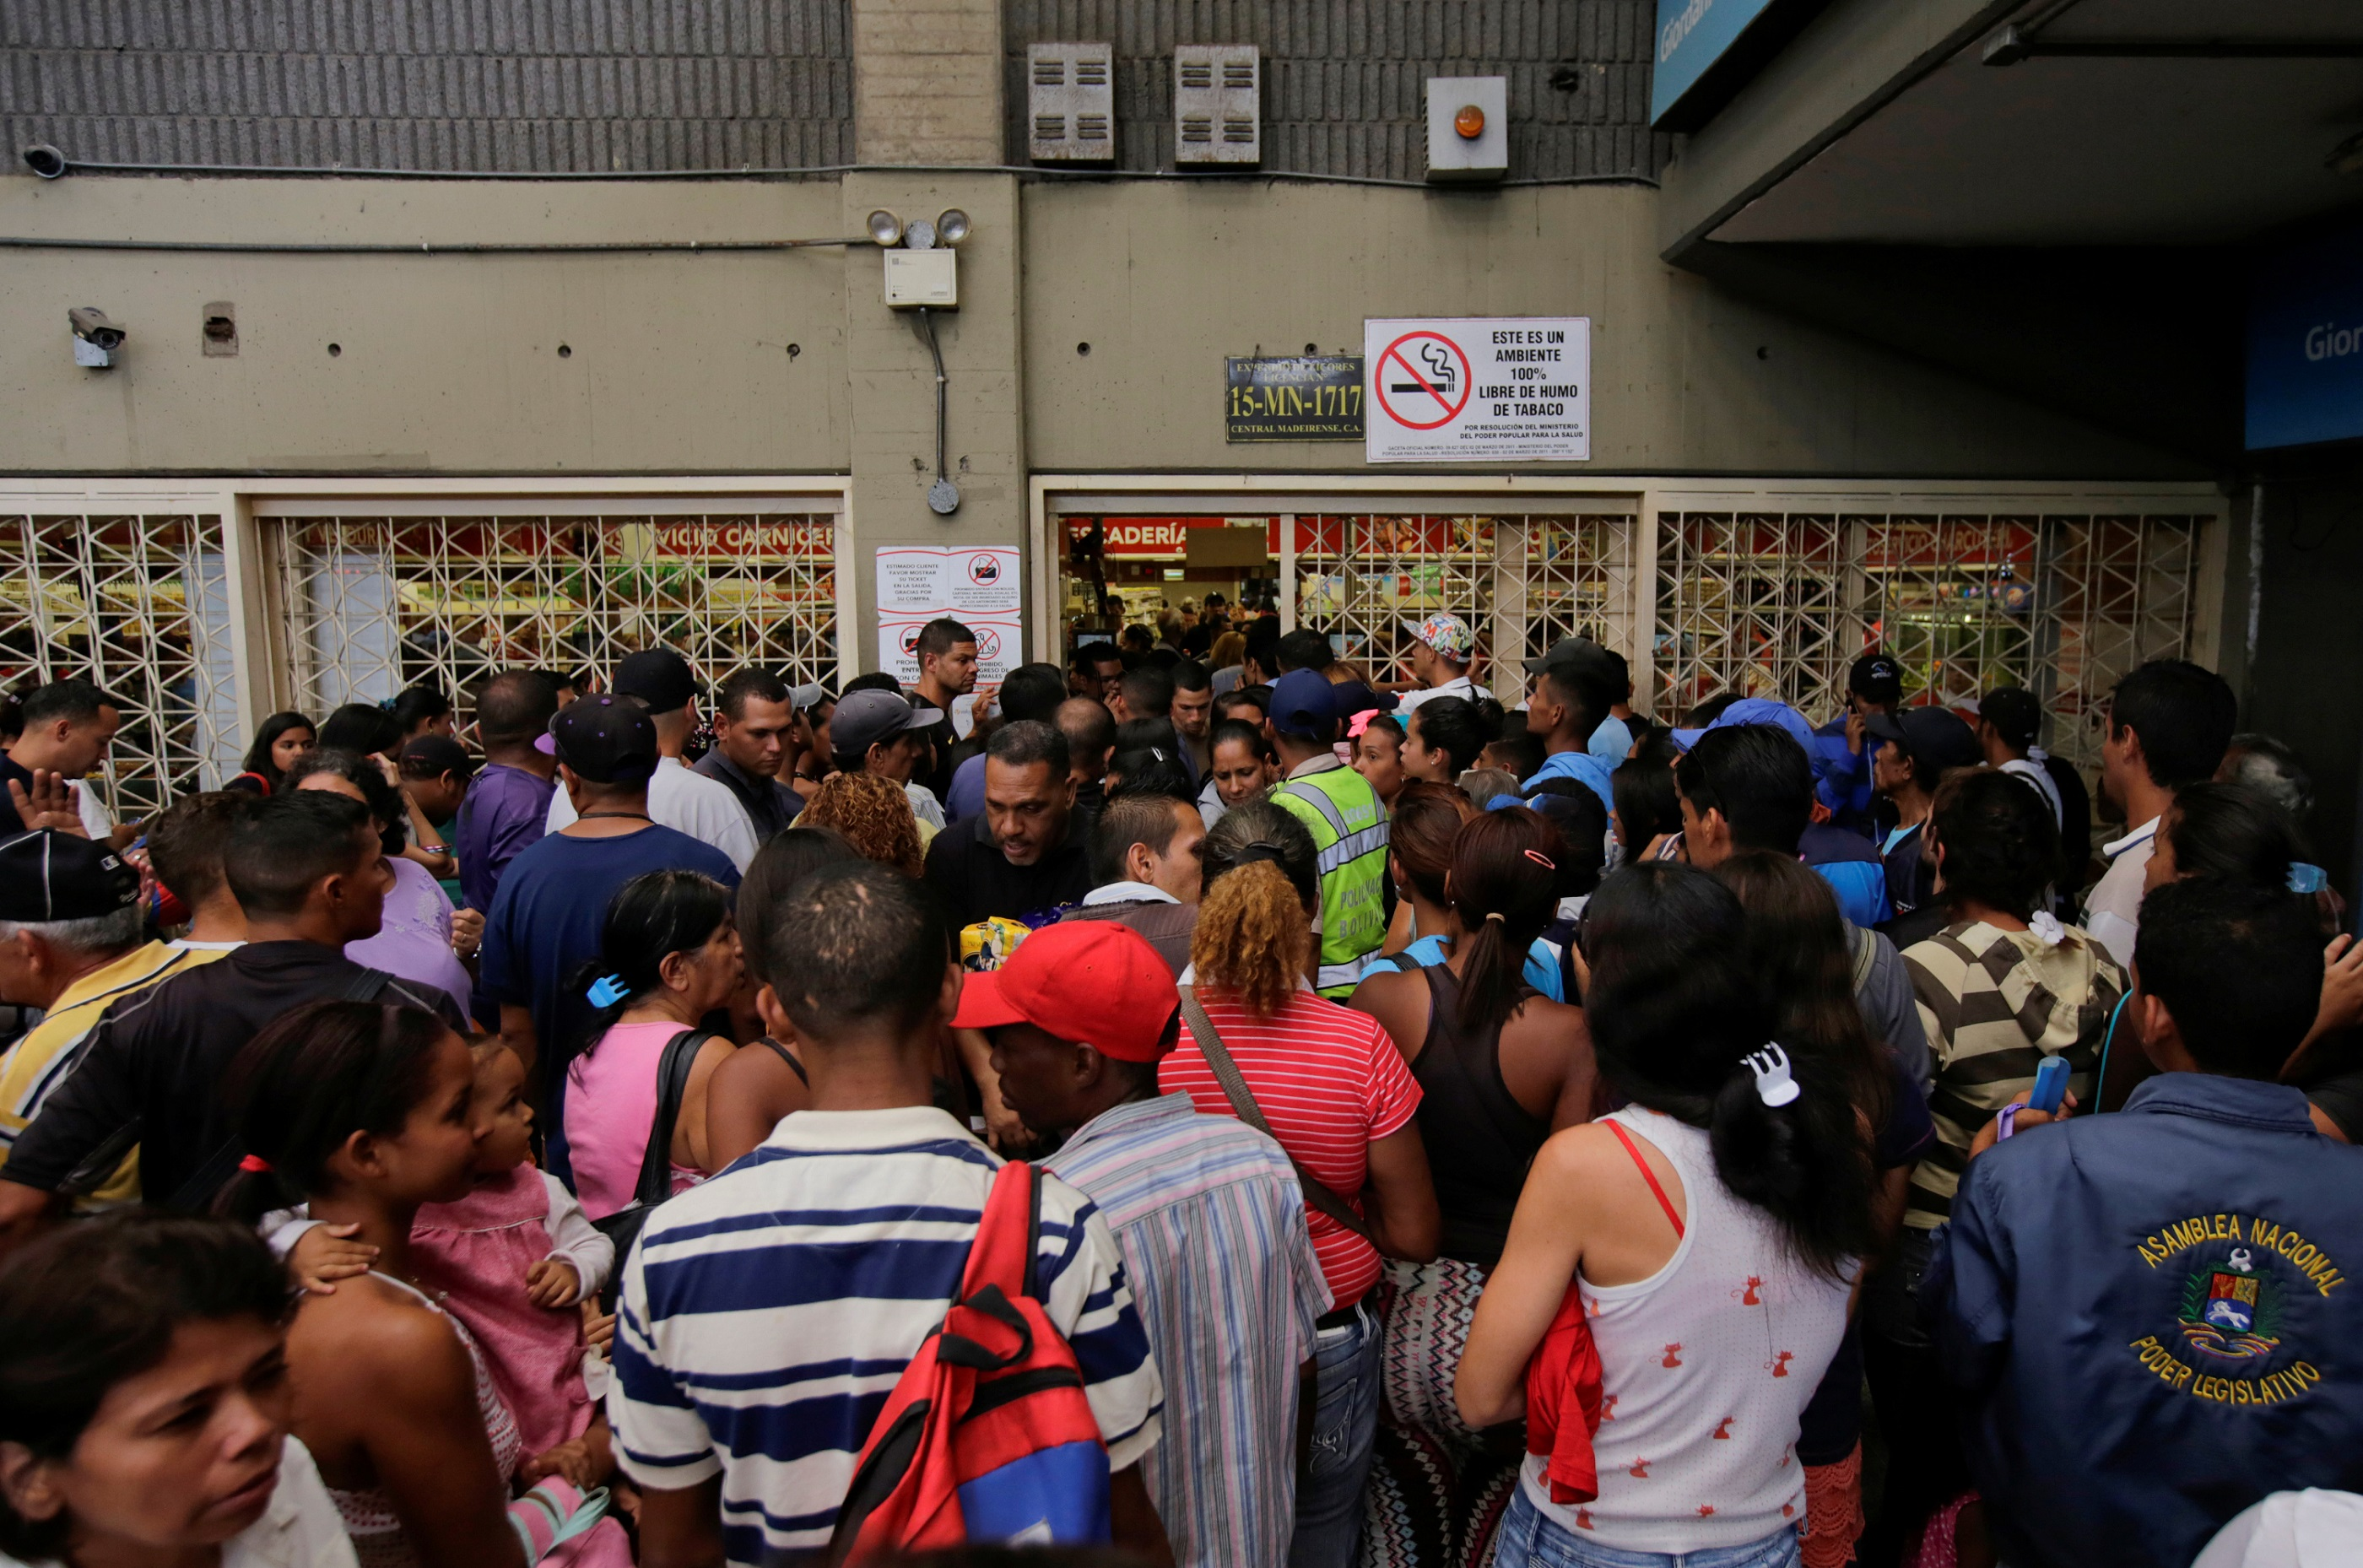 People wait to buy staple items and basic food outside a supermarket in Caracas, Venezuela. Reuters/Henry Romero